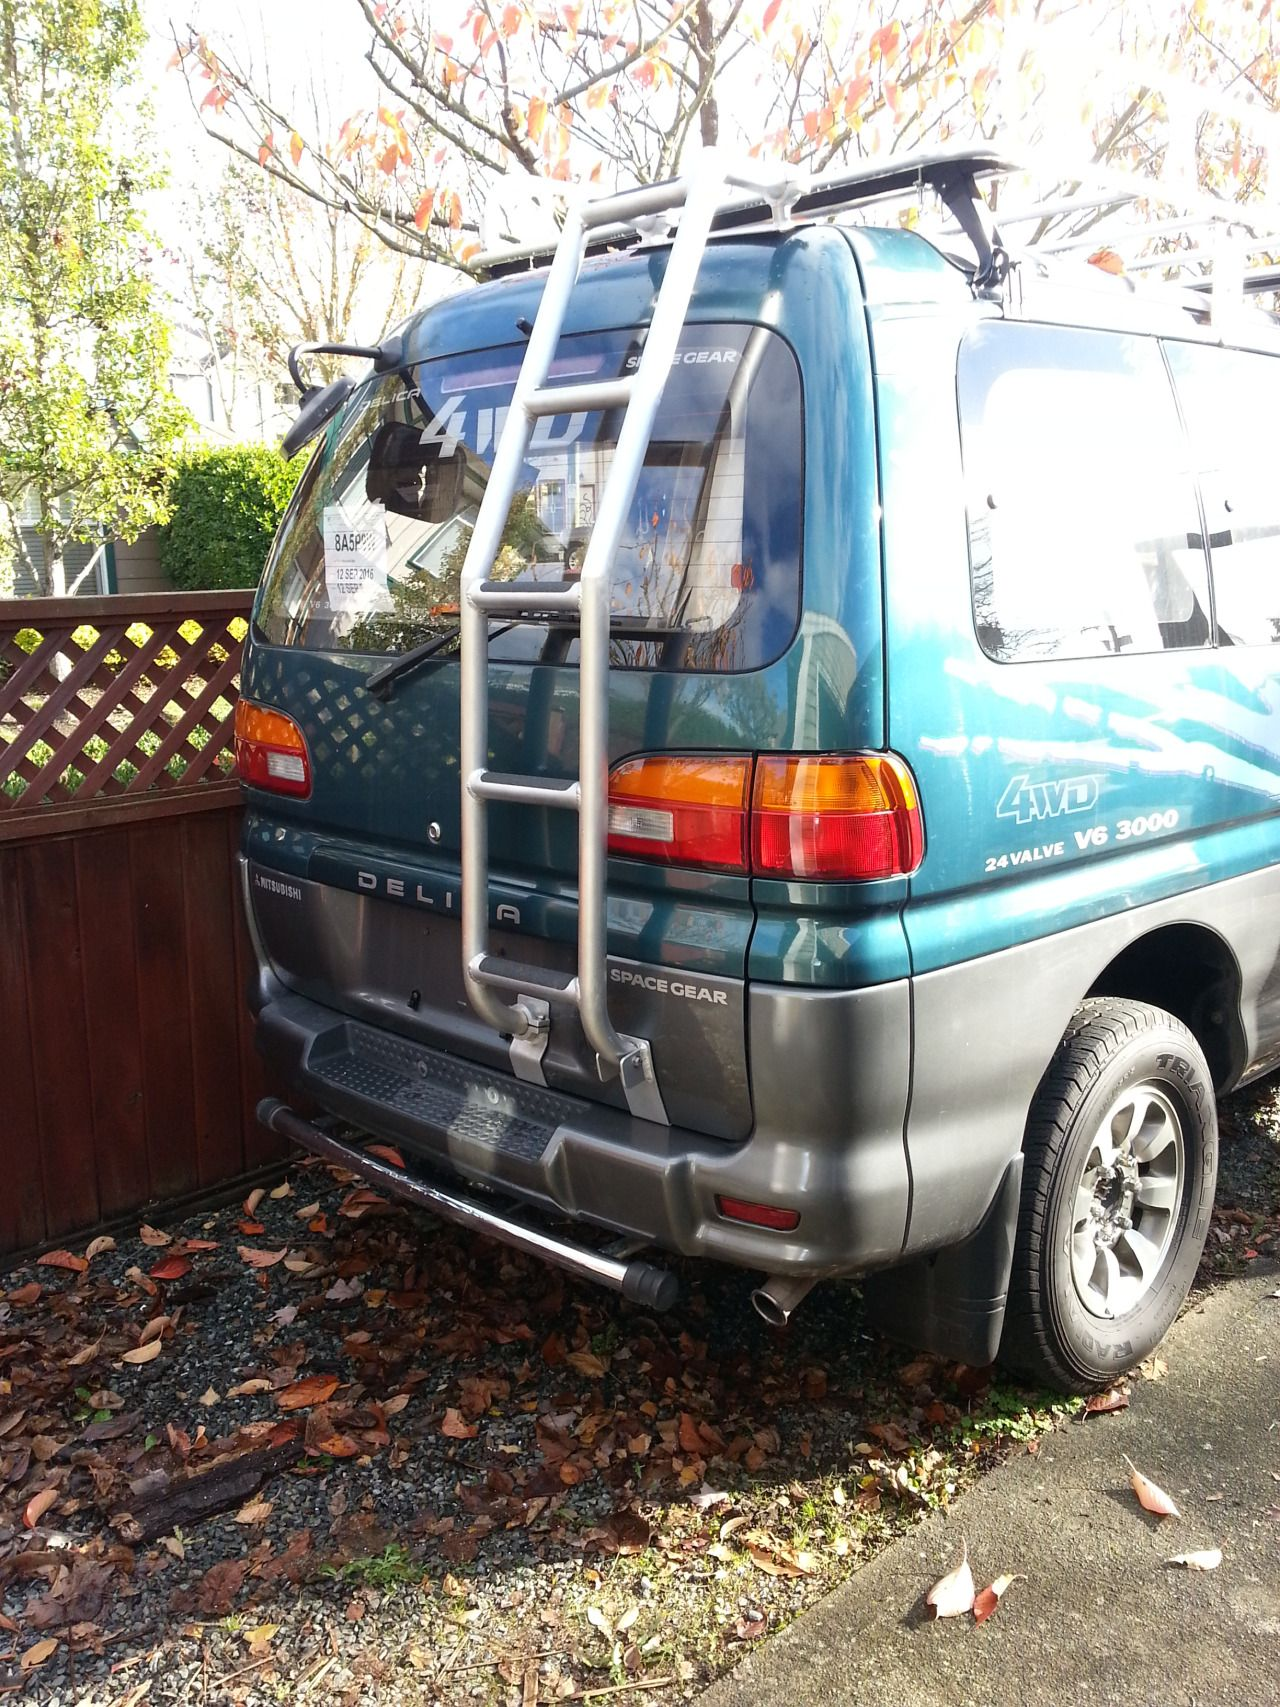 Custom Build Ladder And Roof Rack Completed Expedition Vehicle Suv Camper Roof Rack